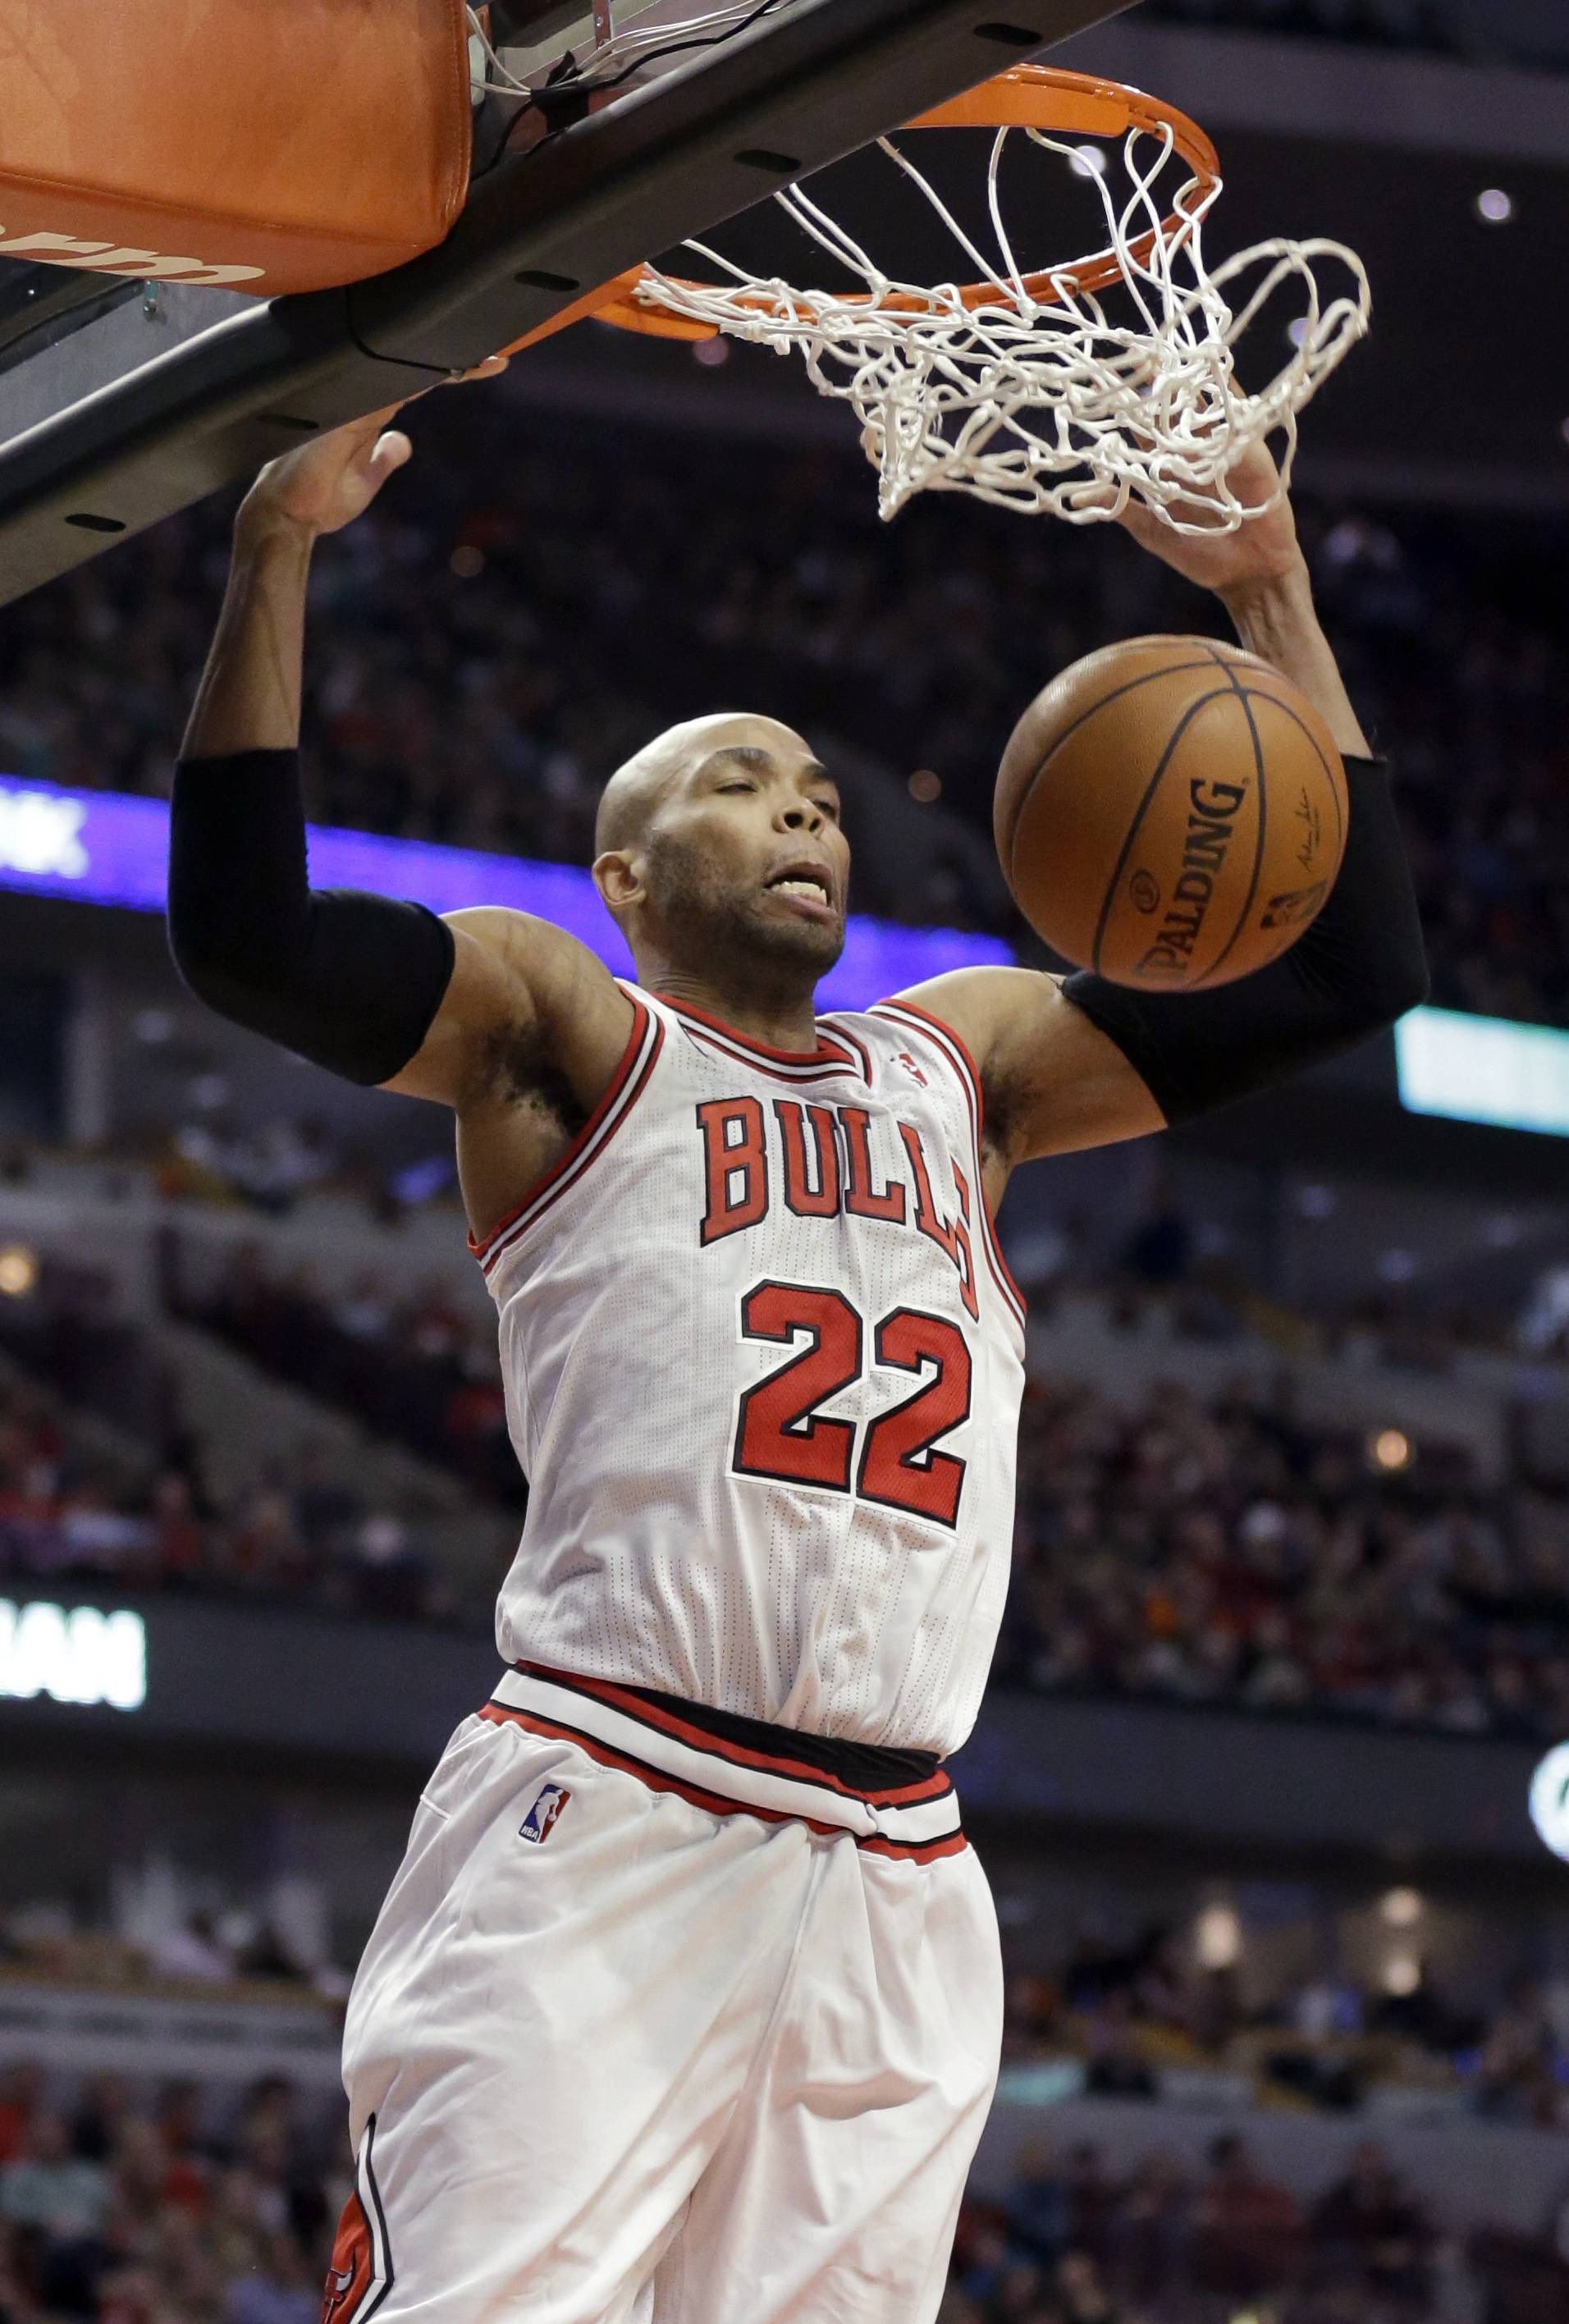 Bulls extend 76ers' losing streak to 24